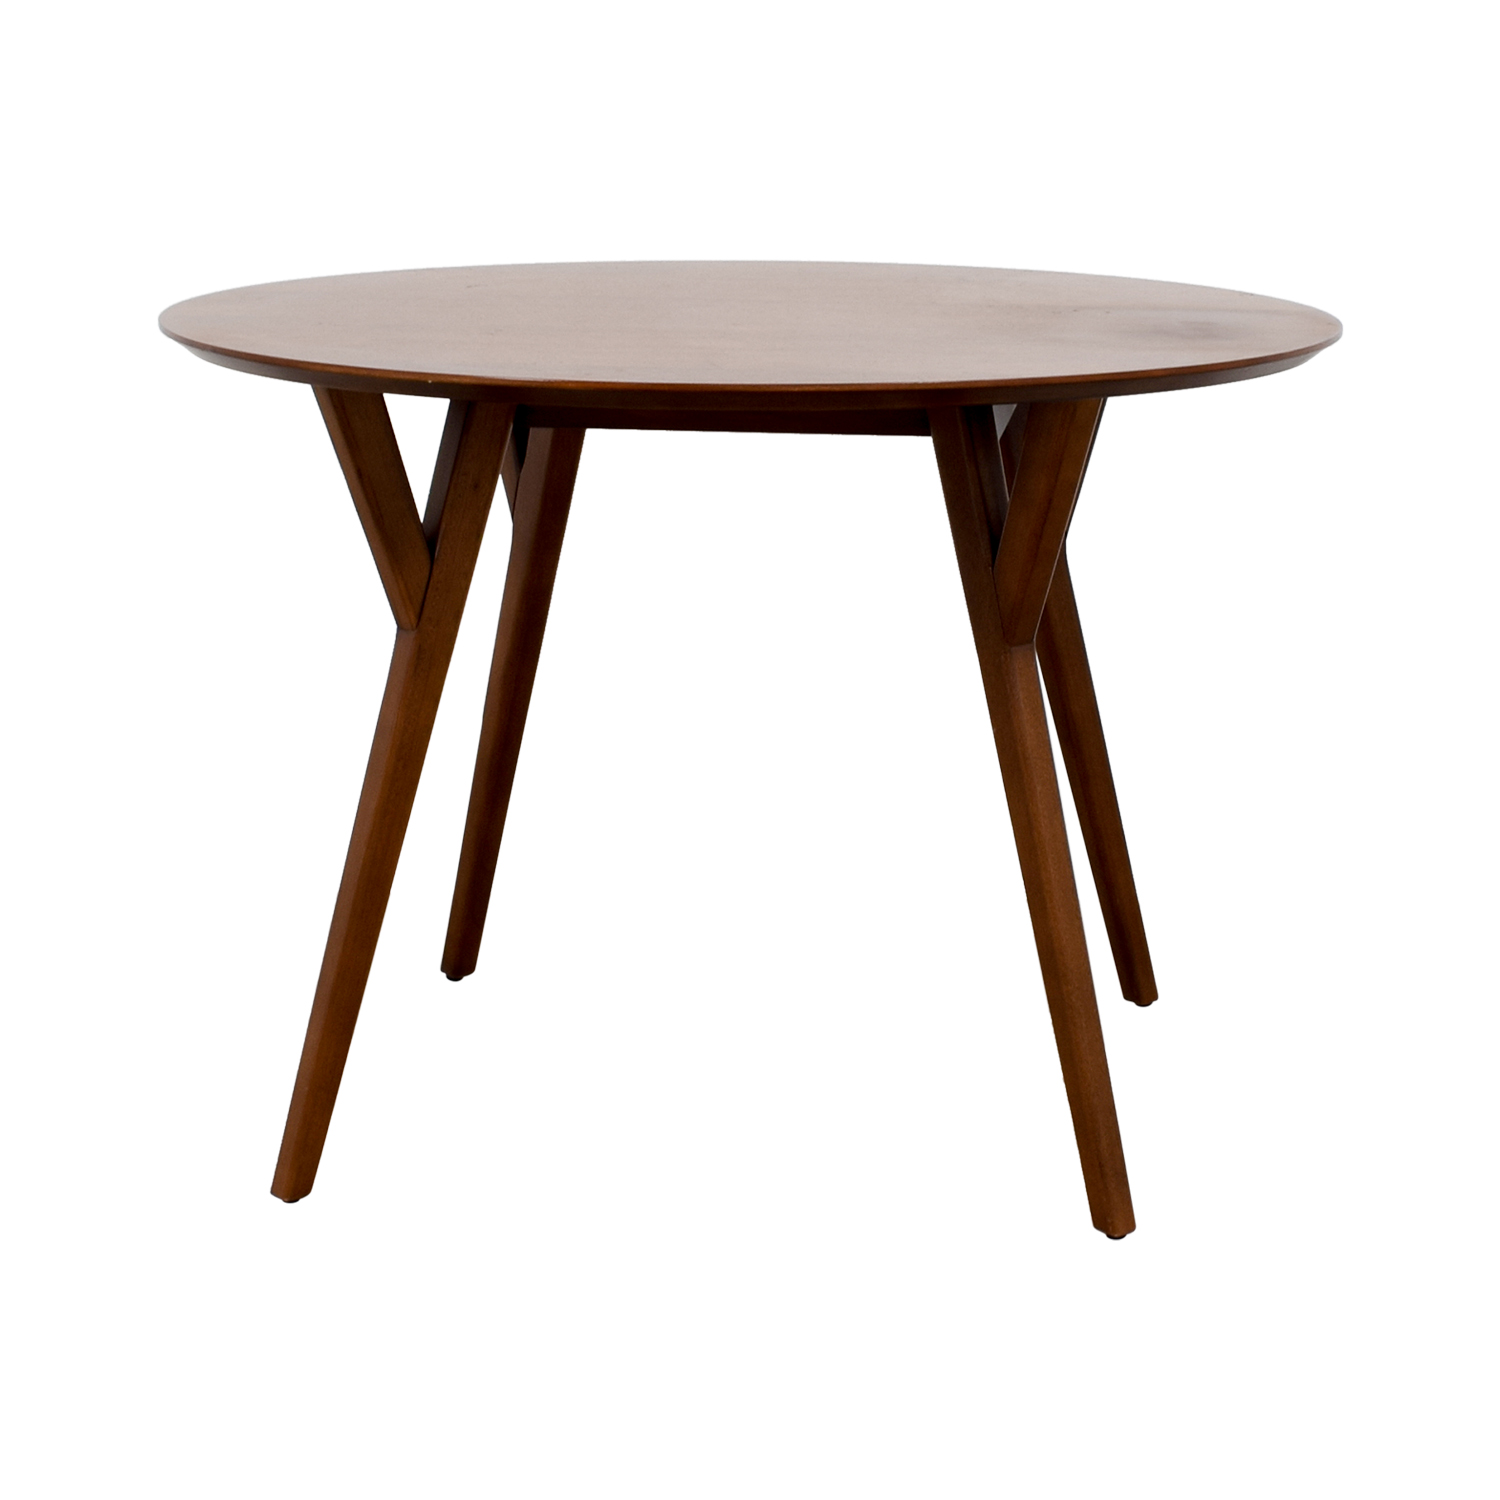 3% OFF - West Elm West Elm Round Wood Dining Table / Tables